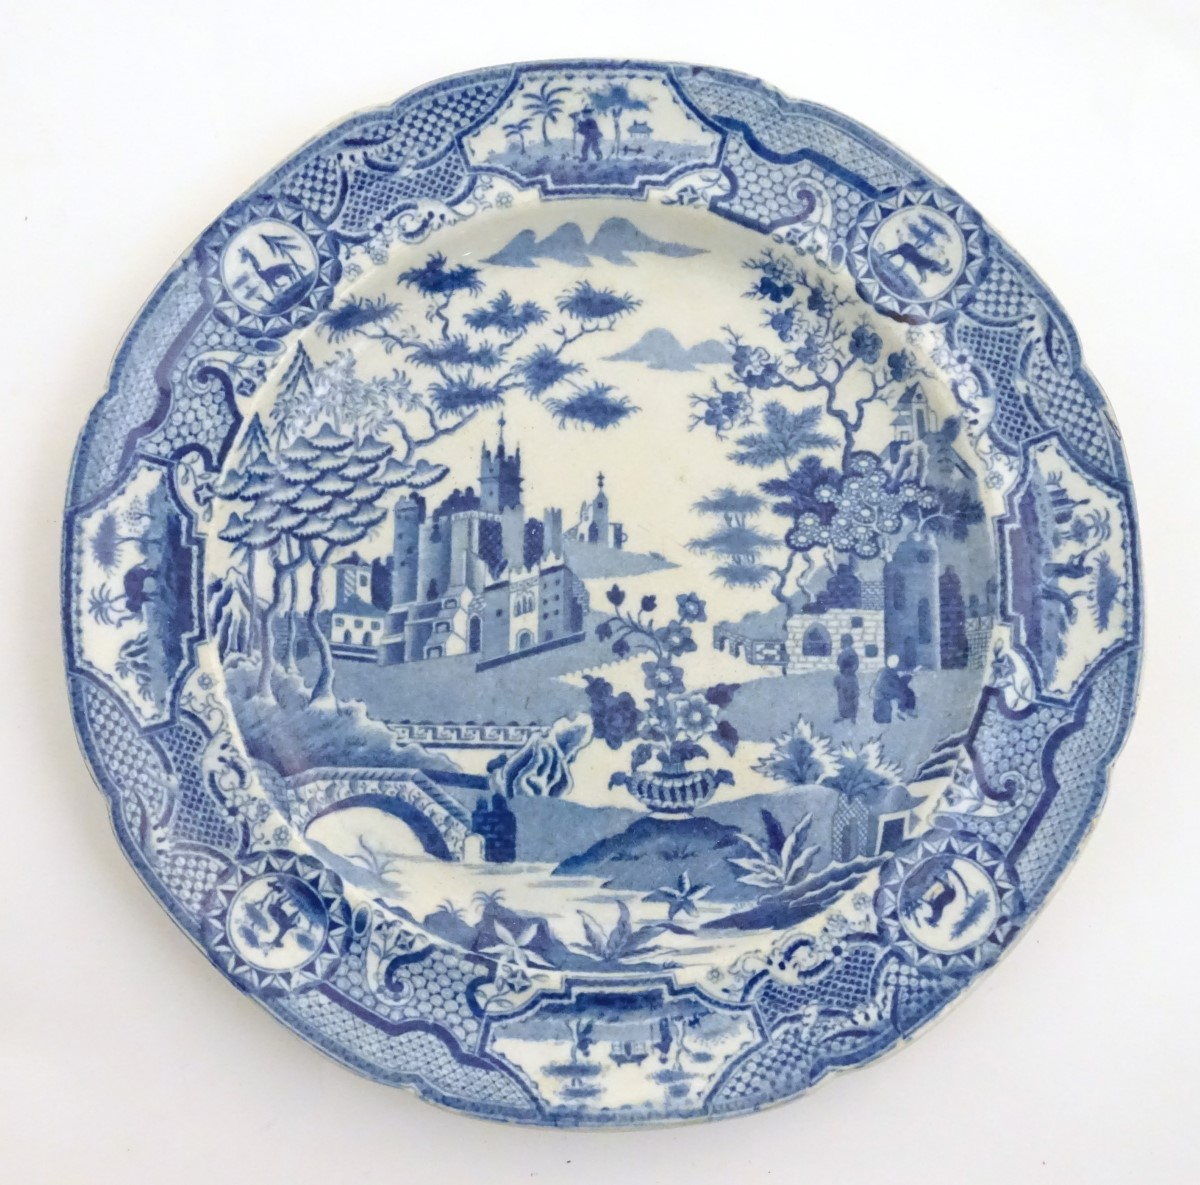 Lot 37 - A Spode blue and white plate decorated with a stylised landscape, with trees, flowers, bridges,